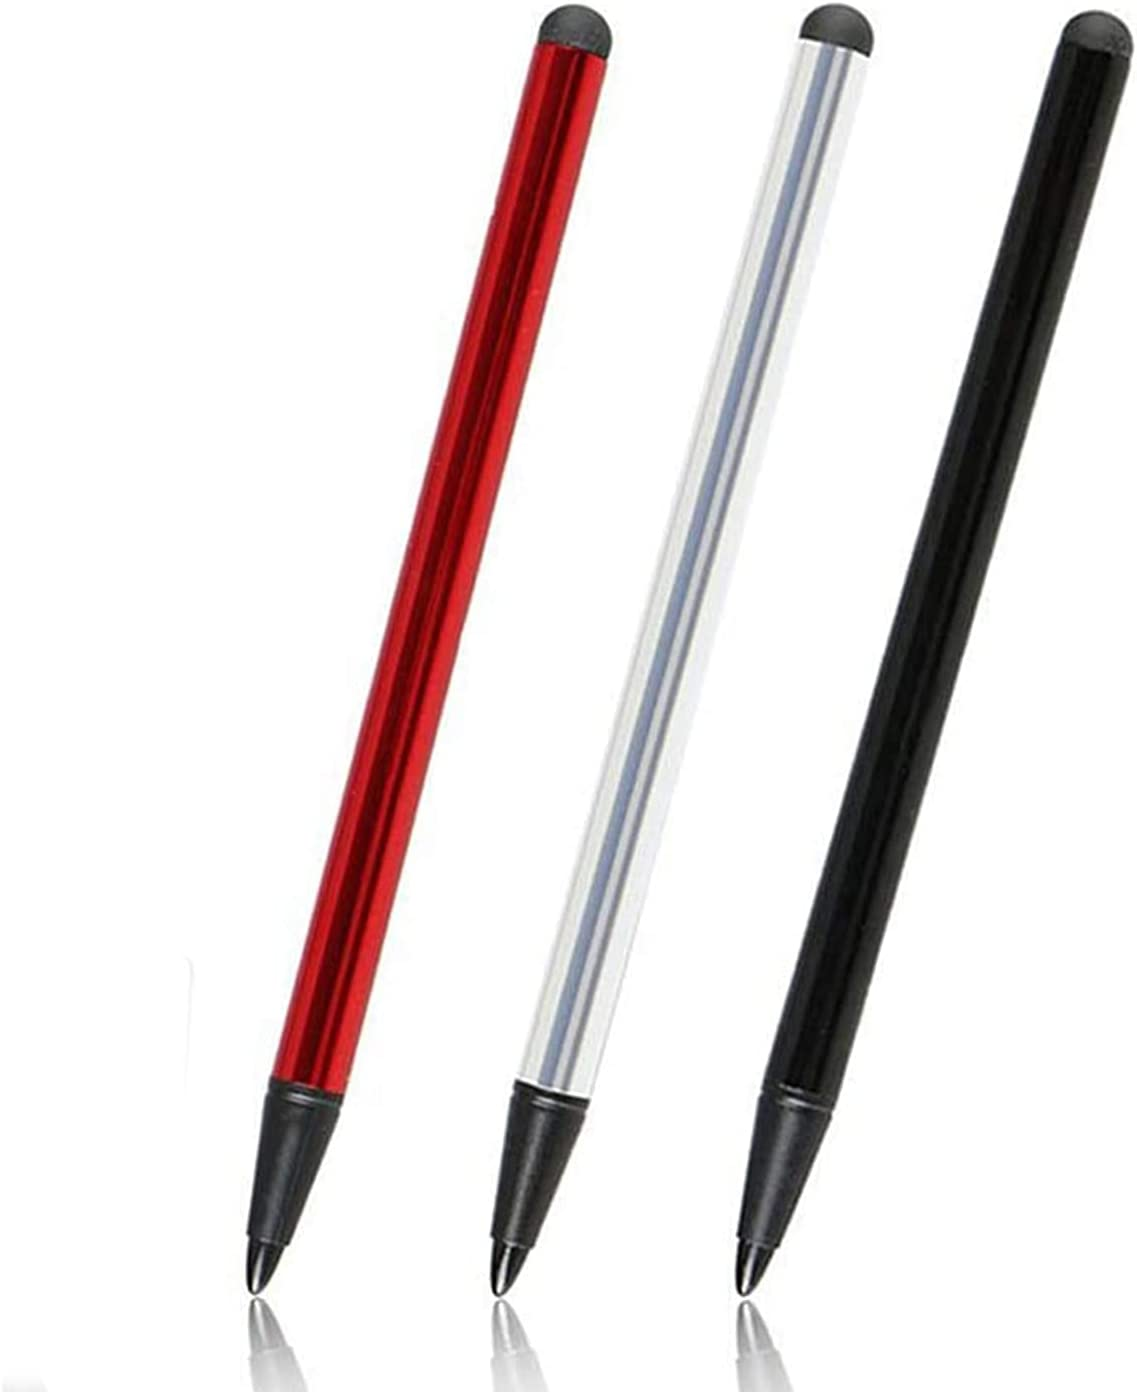 Capacitive and Resistive Stylus Pen, Universal High Sensitive & Precision Capacitive Disc Tip Touch Screen Pen Stylus, 2 in 1 Touch Screen Pen for iPhone iPad Samsung Tablet Phone PC & Other(3 Pack)